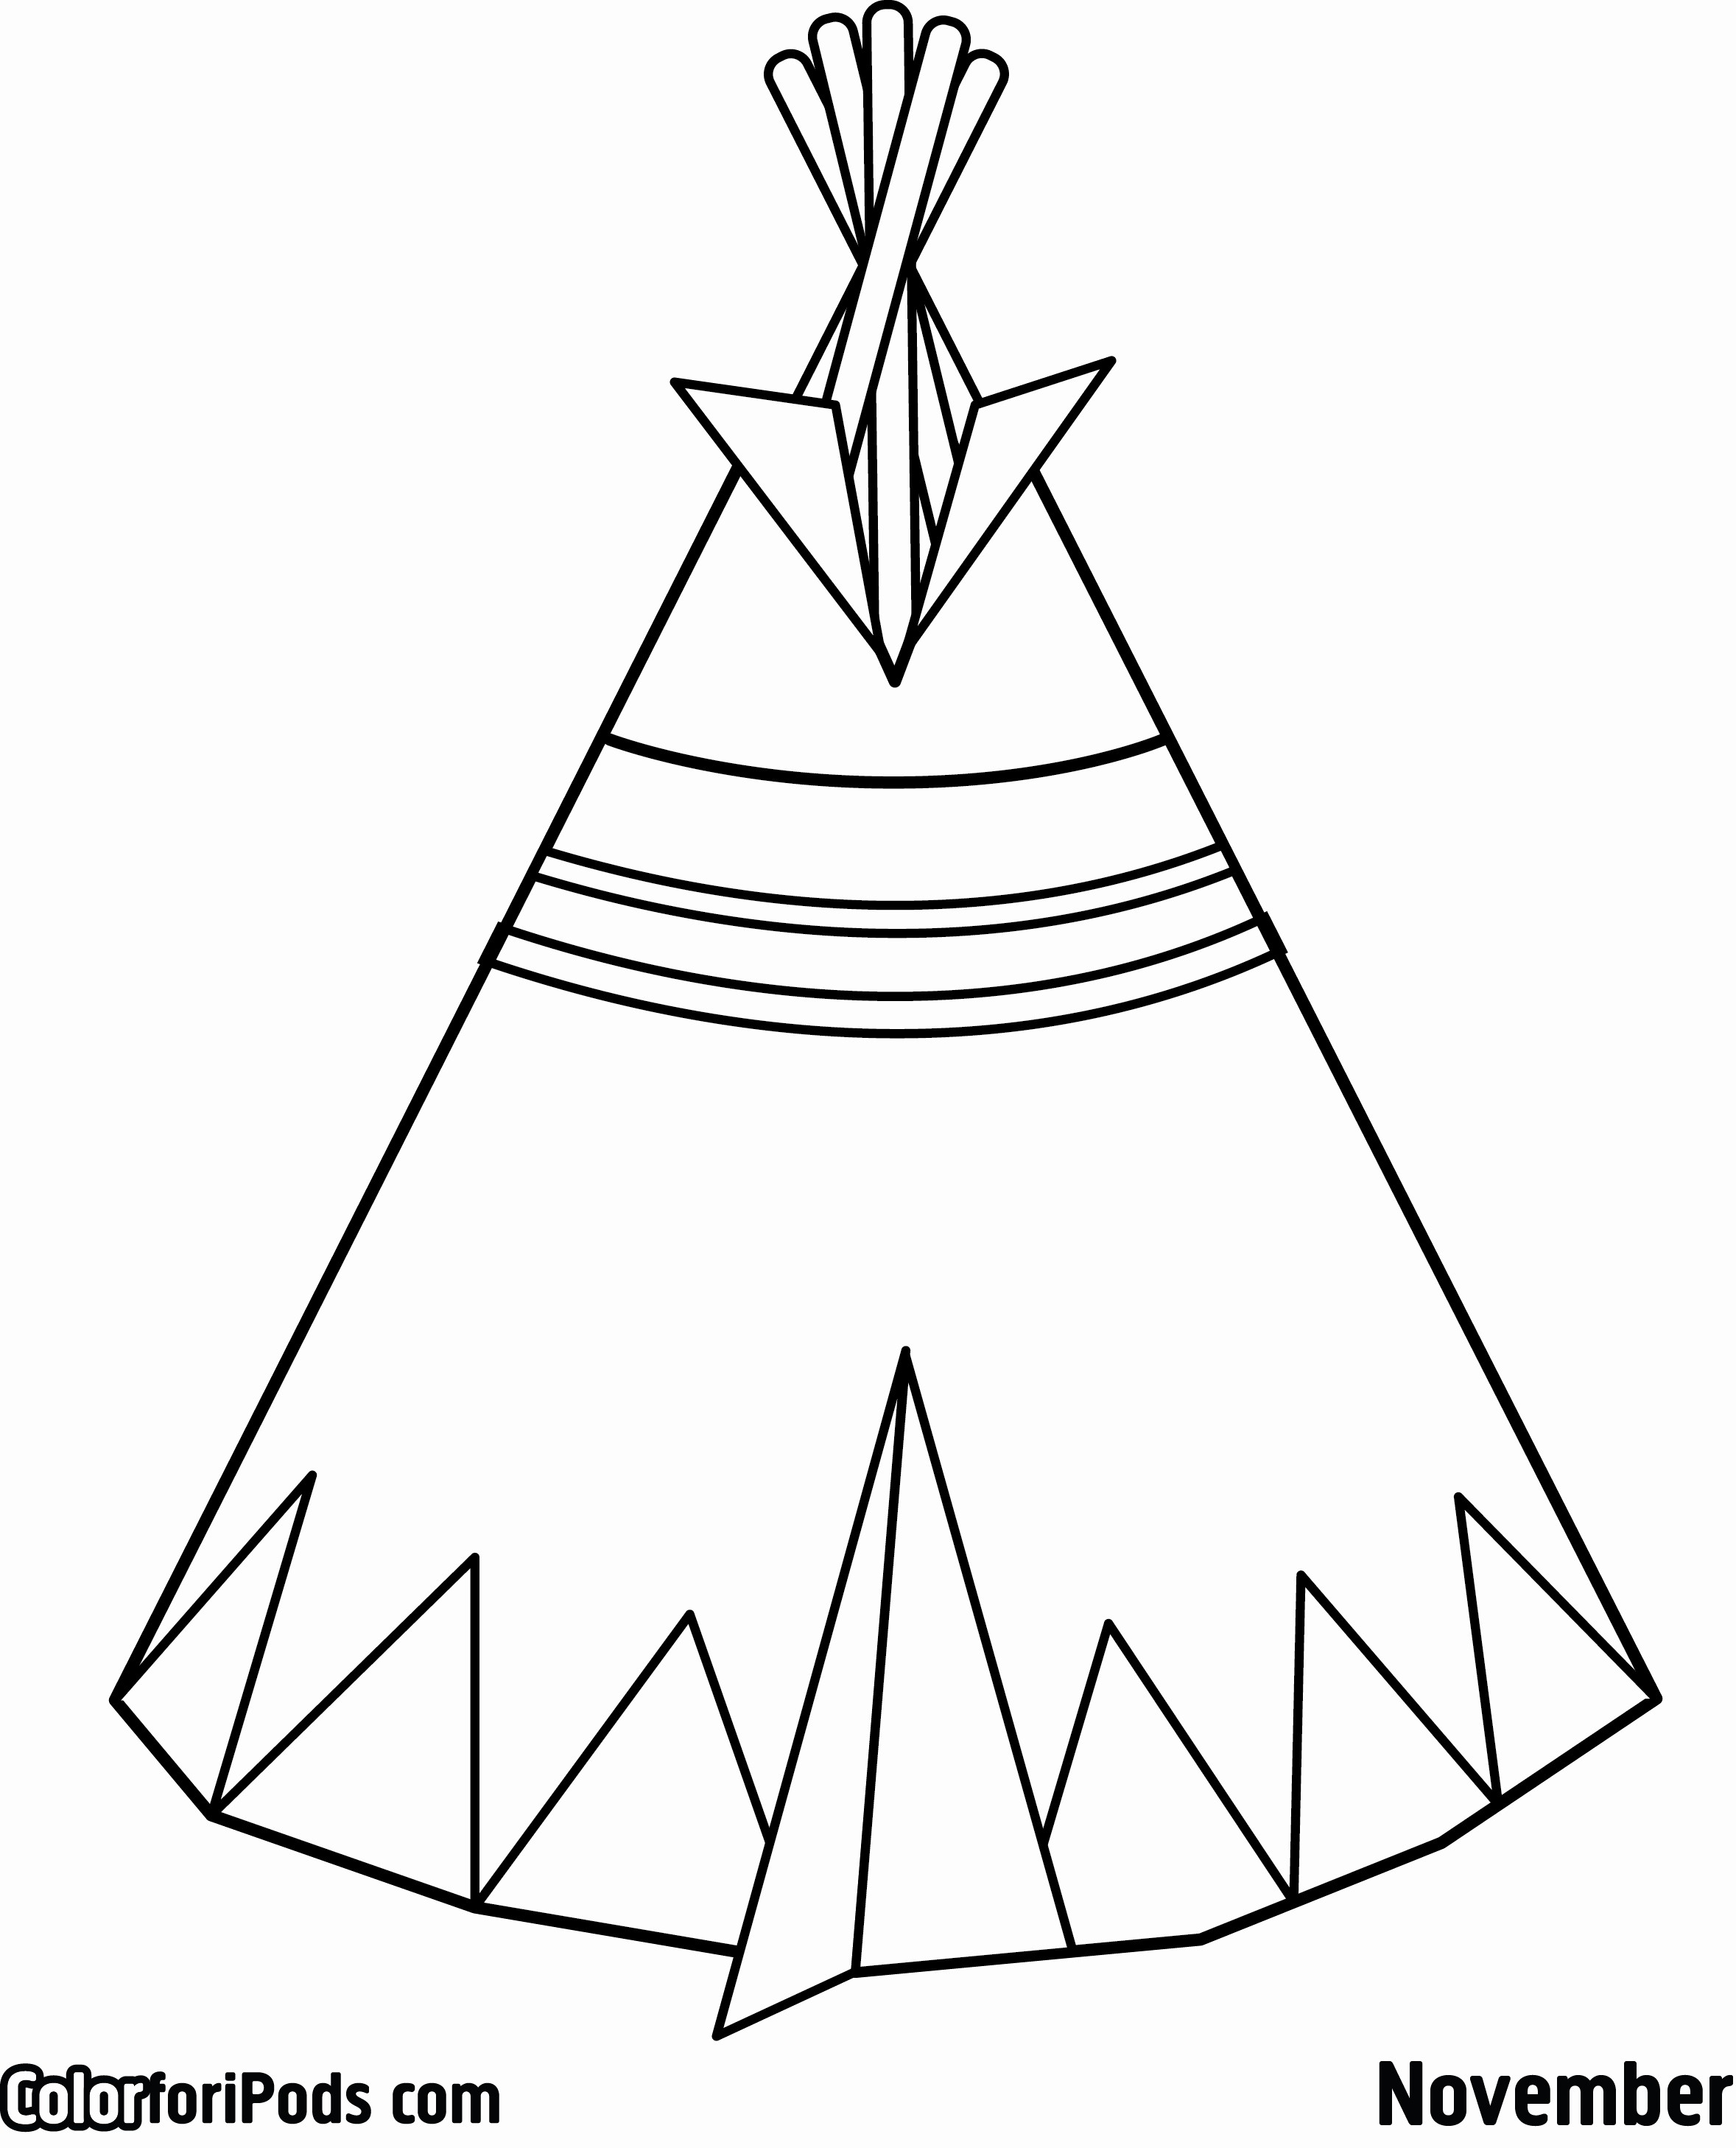 Teepee Coloring Pages  Collection 4q - Save it to your computer